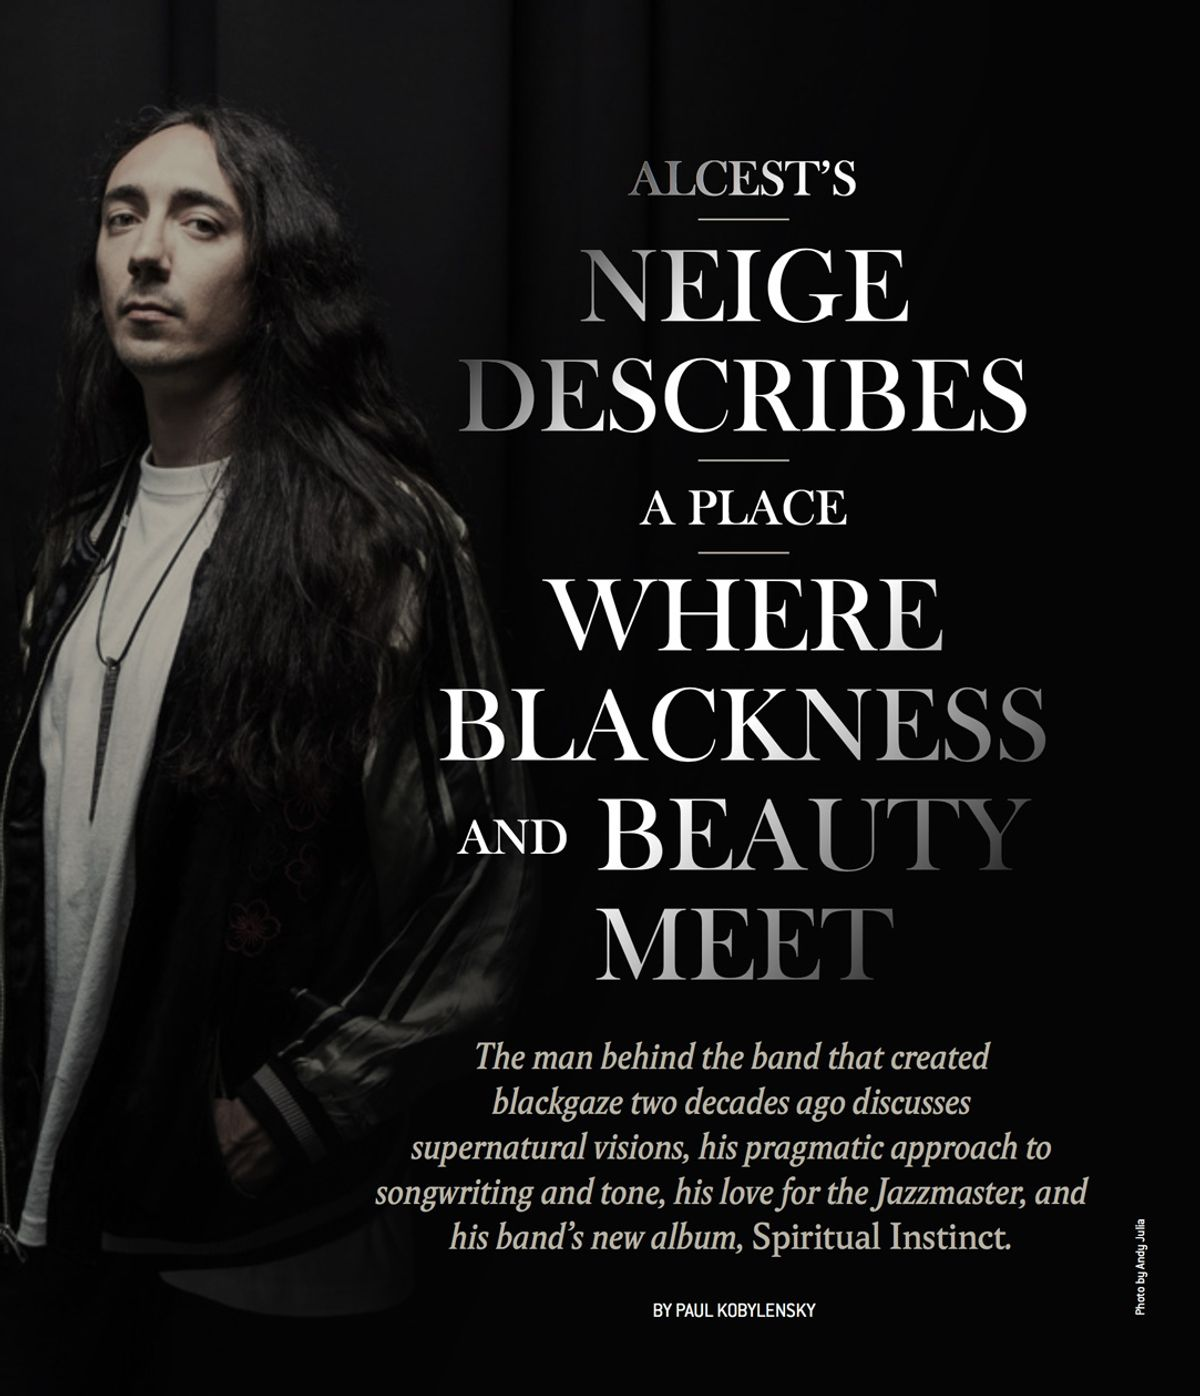 Alcest's Neige Describes a Place Where Blackness and Beauty Meet